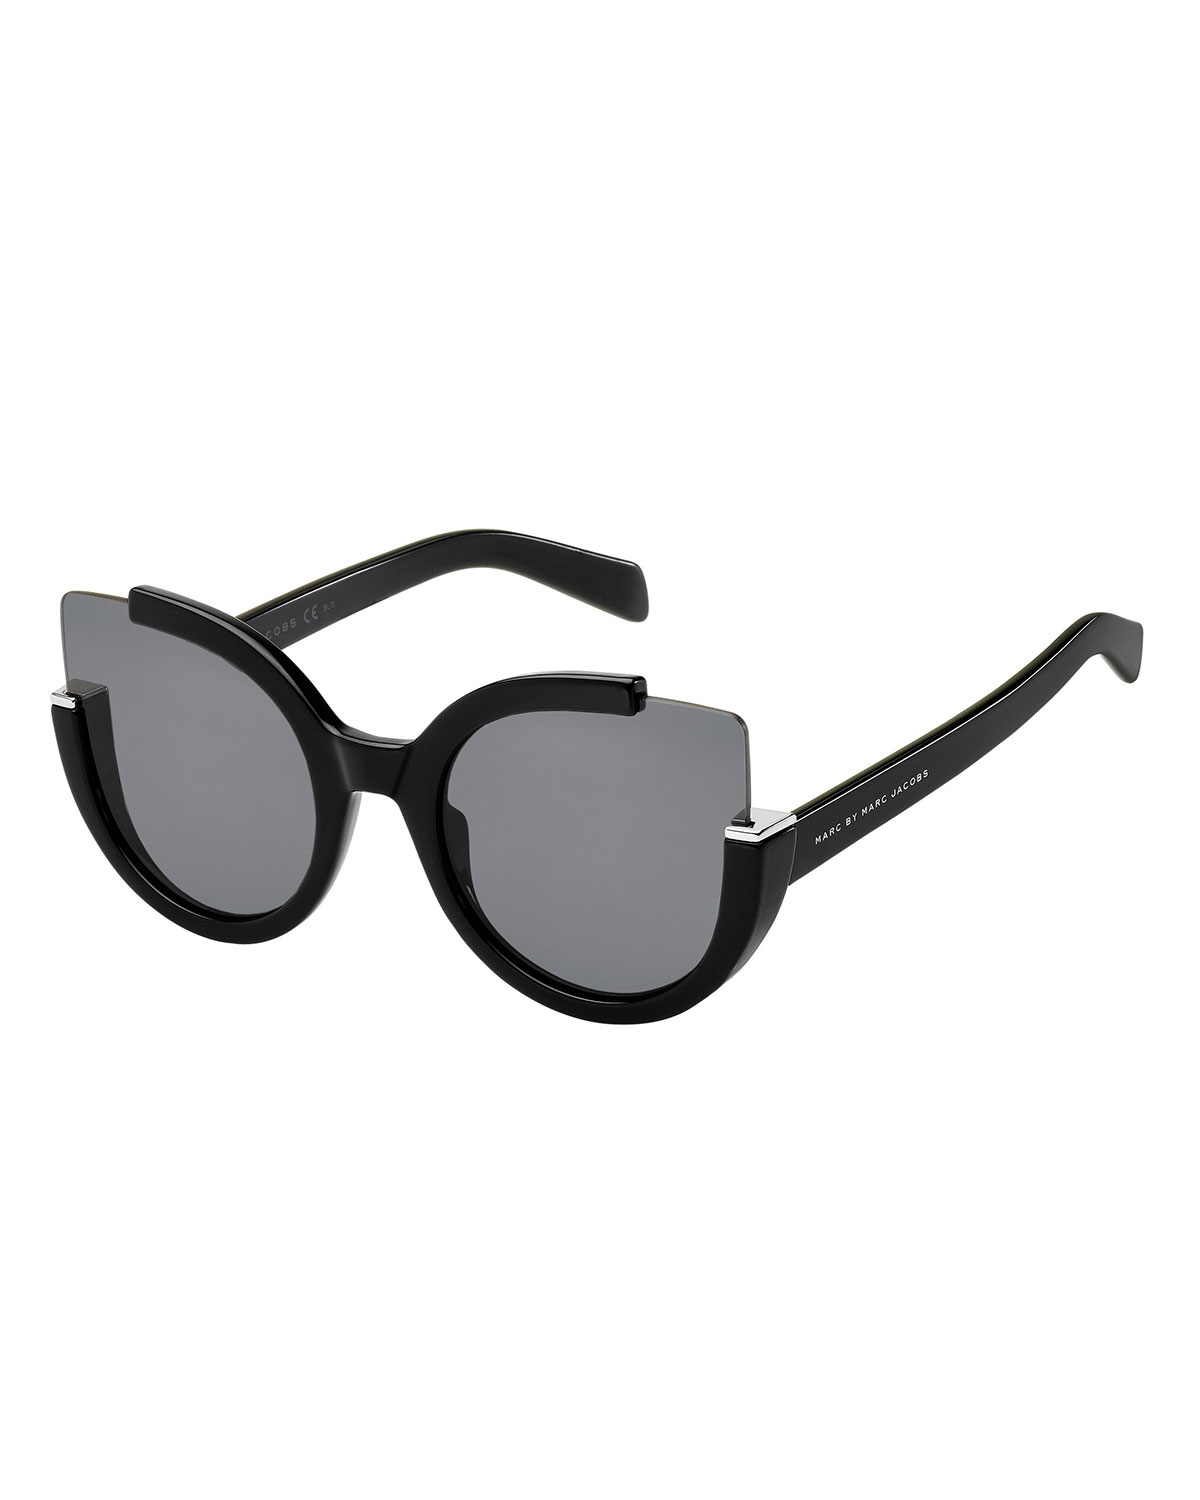 5c7021615ec Lyst - Marc By Marc Jacobs Semi-rimless Cat-eye Sunglasses in Black